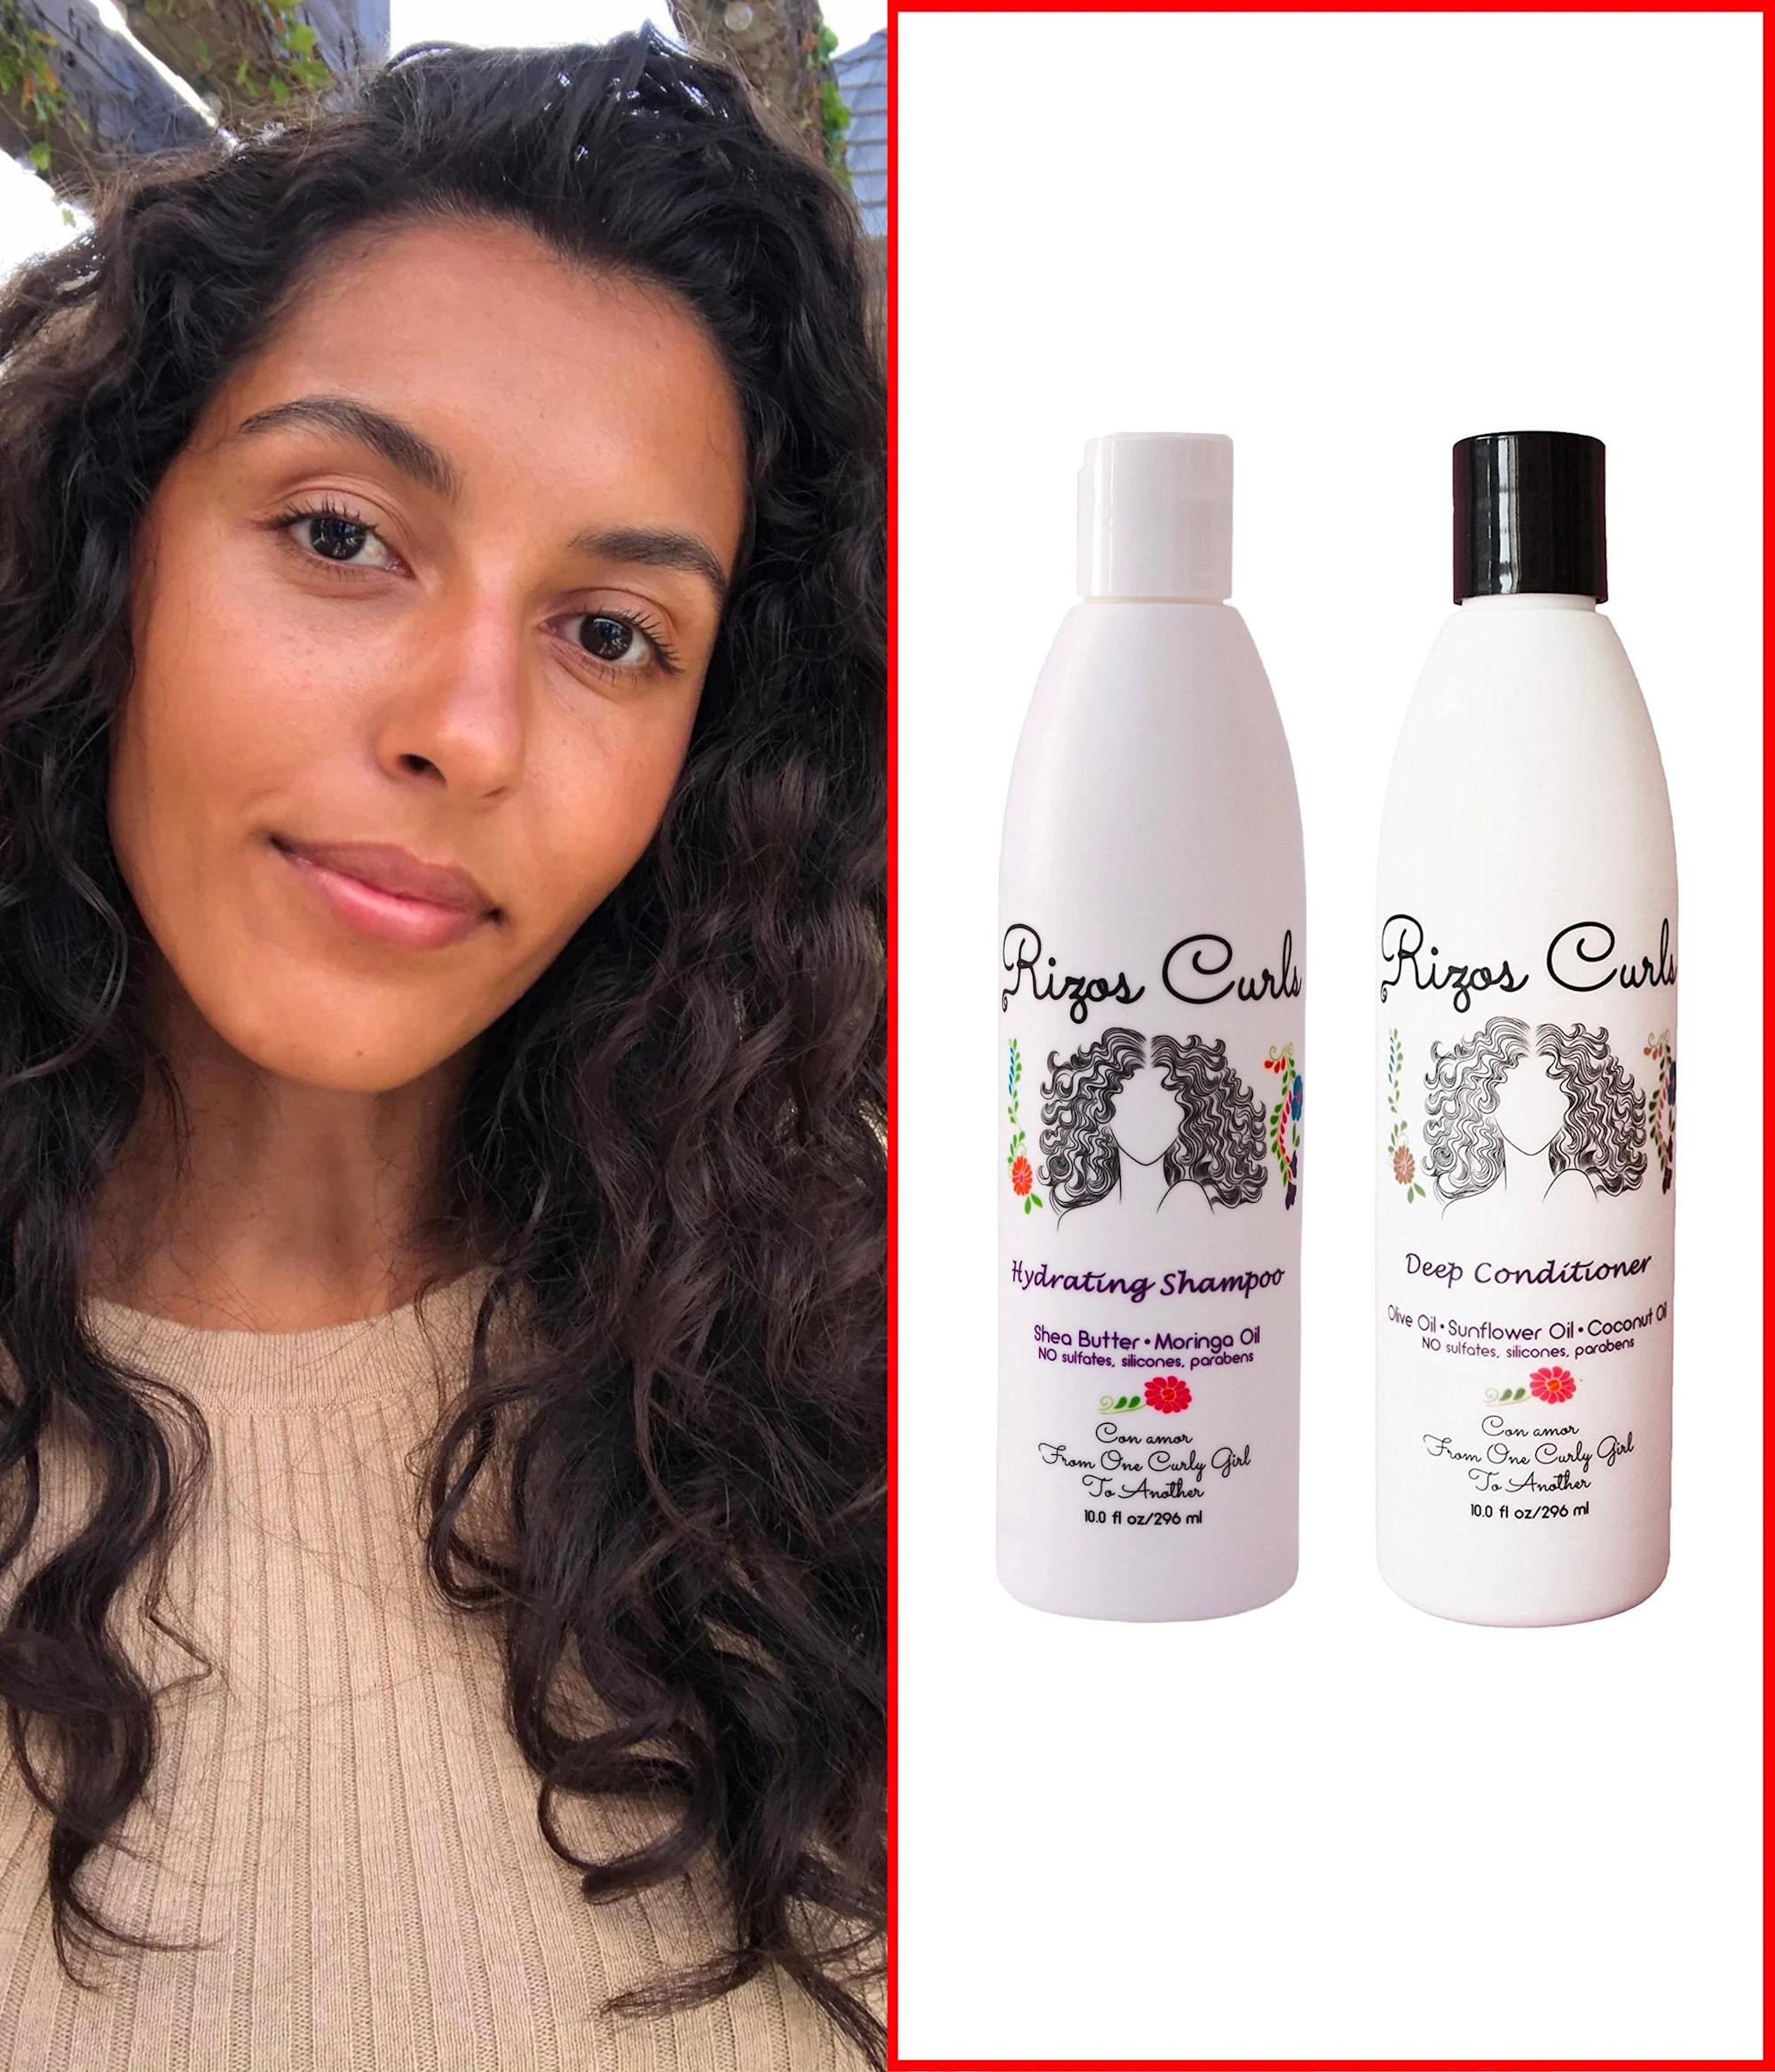 The Best Shampoo and Conditioner for Curly Hair, According to ...